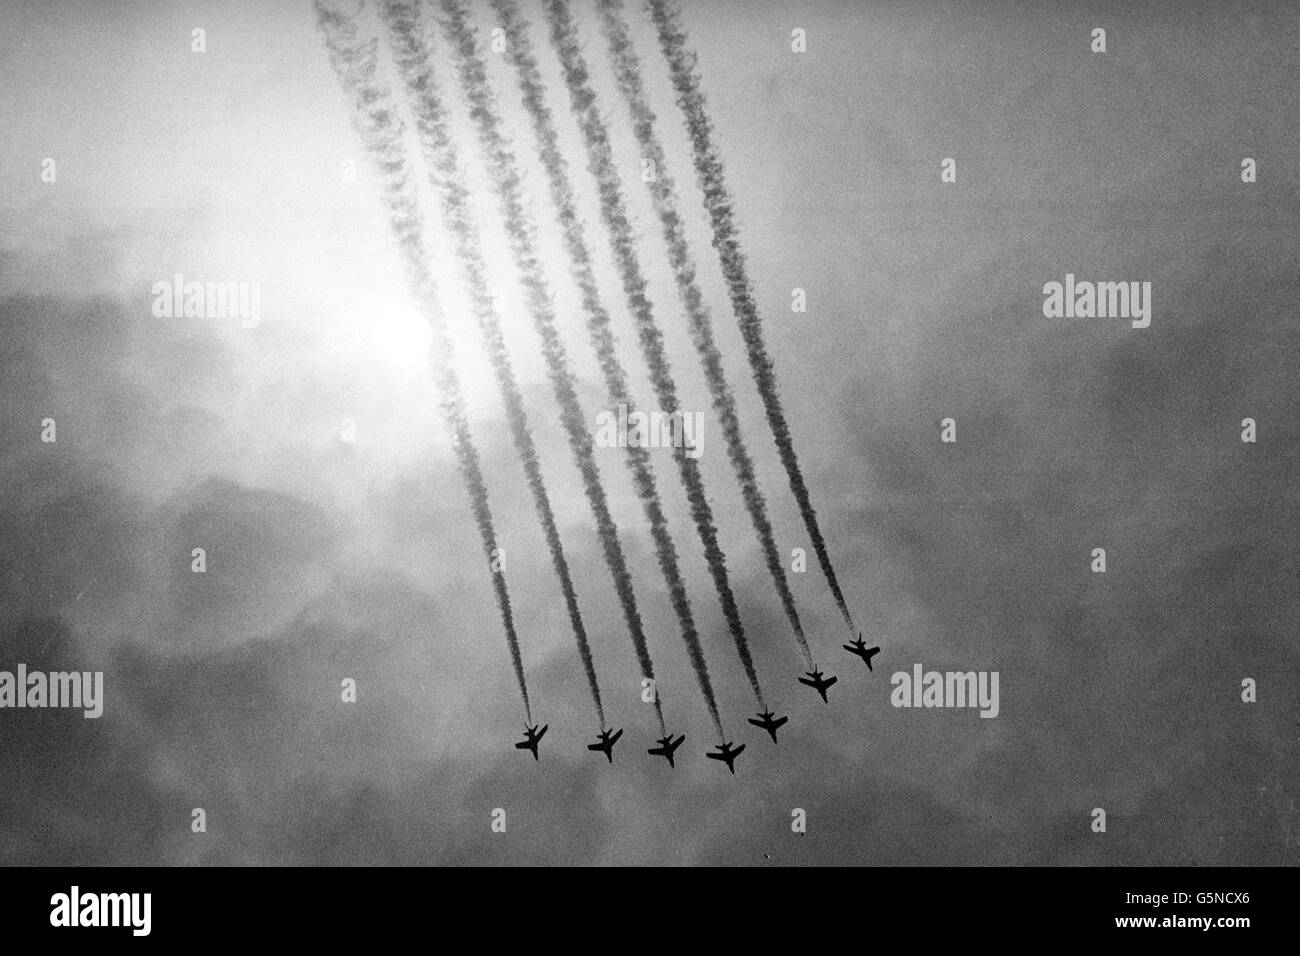 Disasters and Accidents - Four Red Arrows Pilots Die - Stock Image